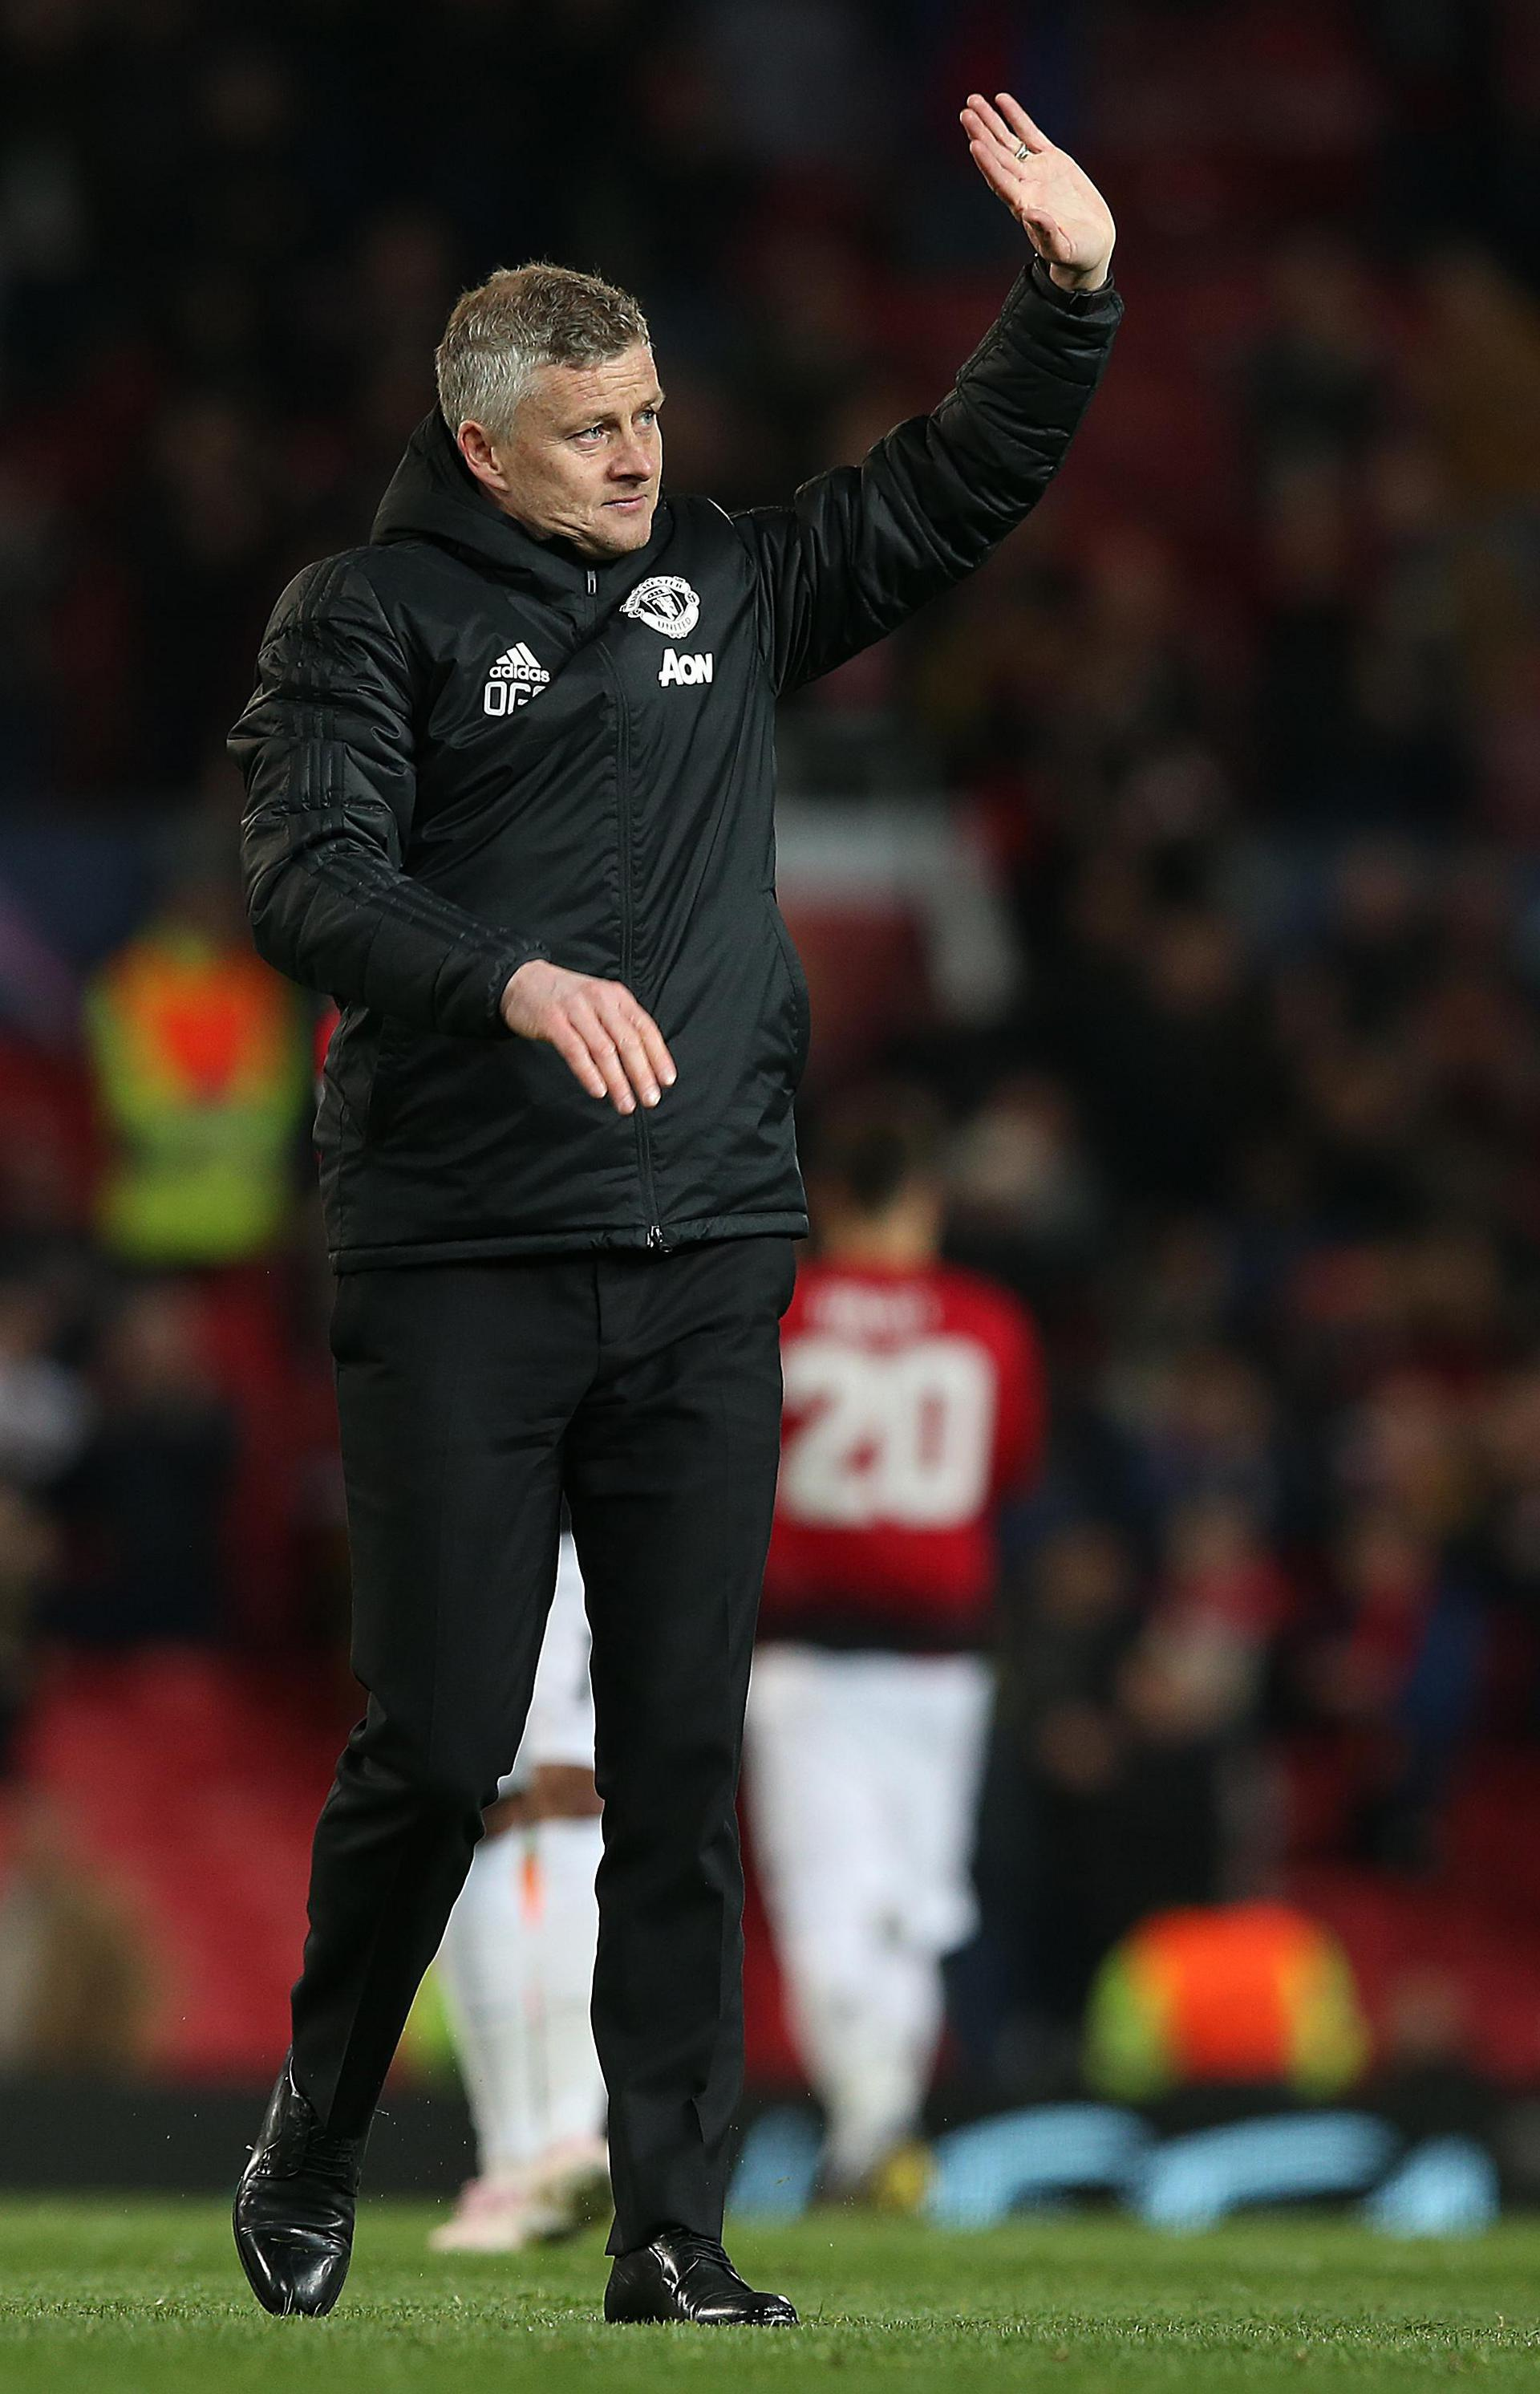 Ole Gunnar Solskjaer waves to the United fans at Old Trafford